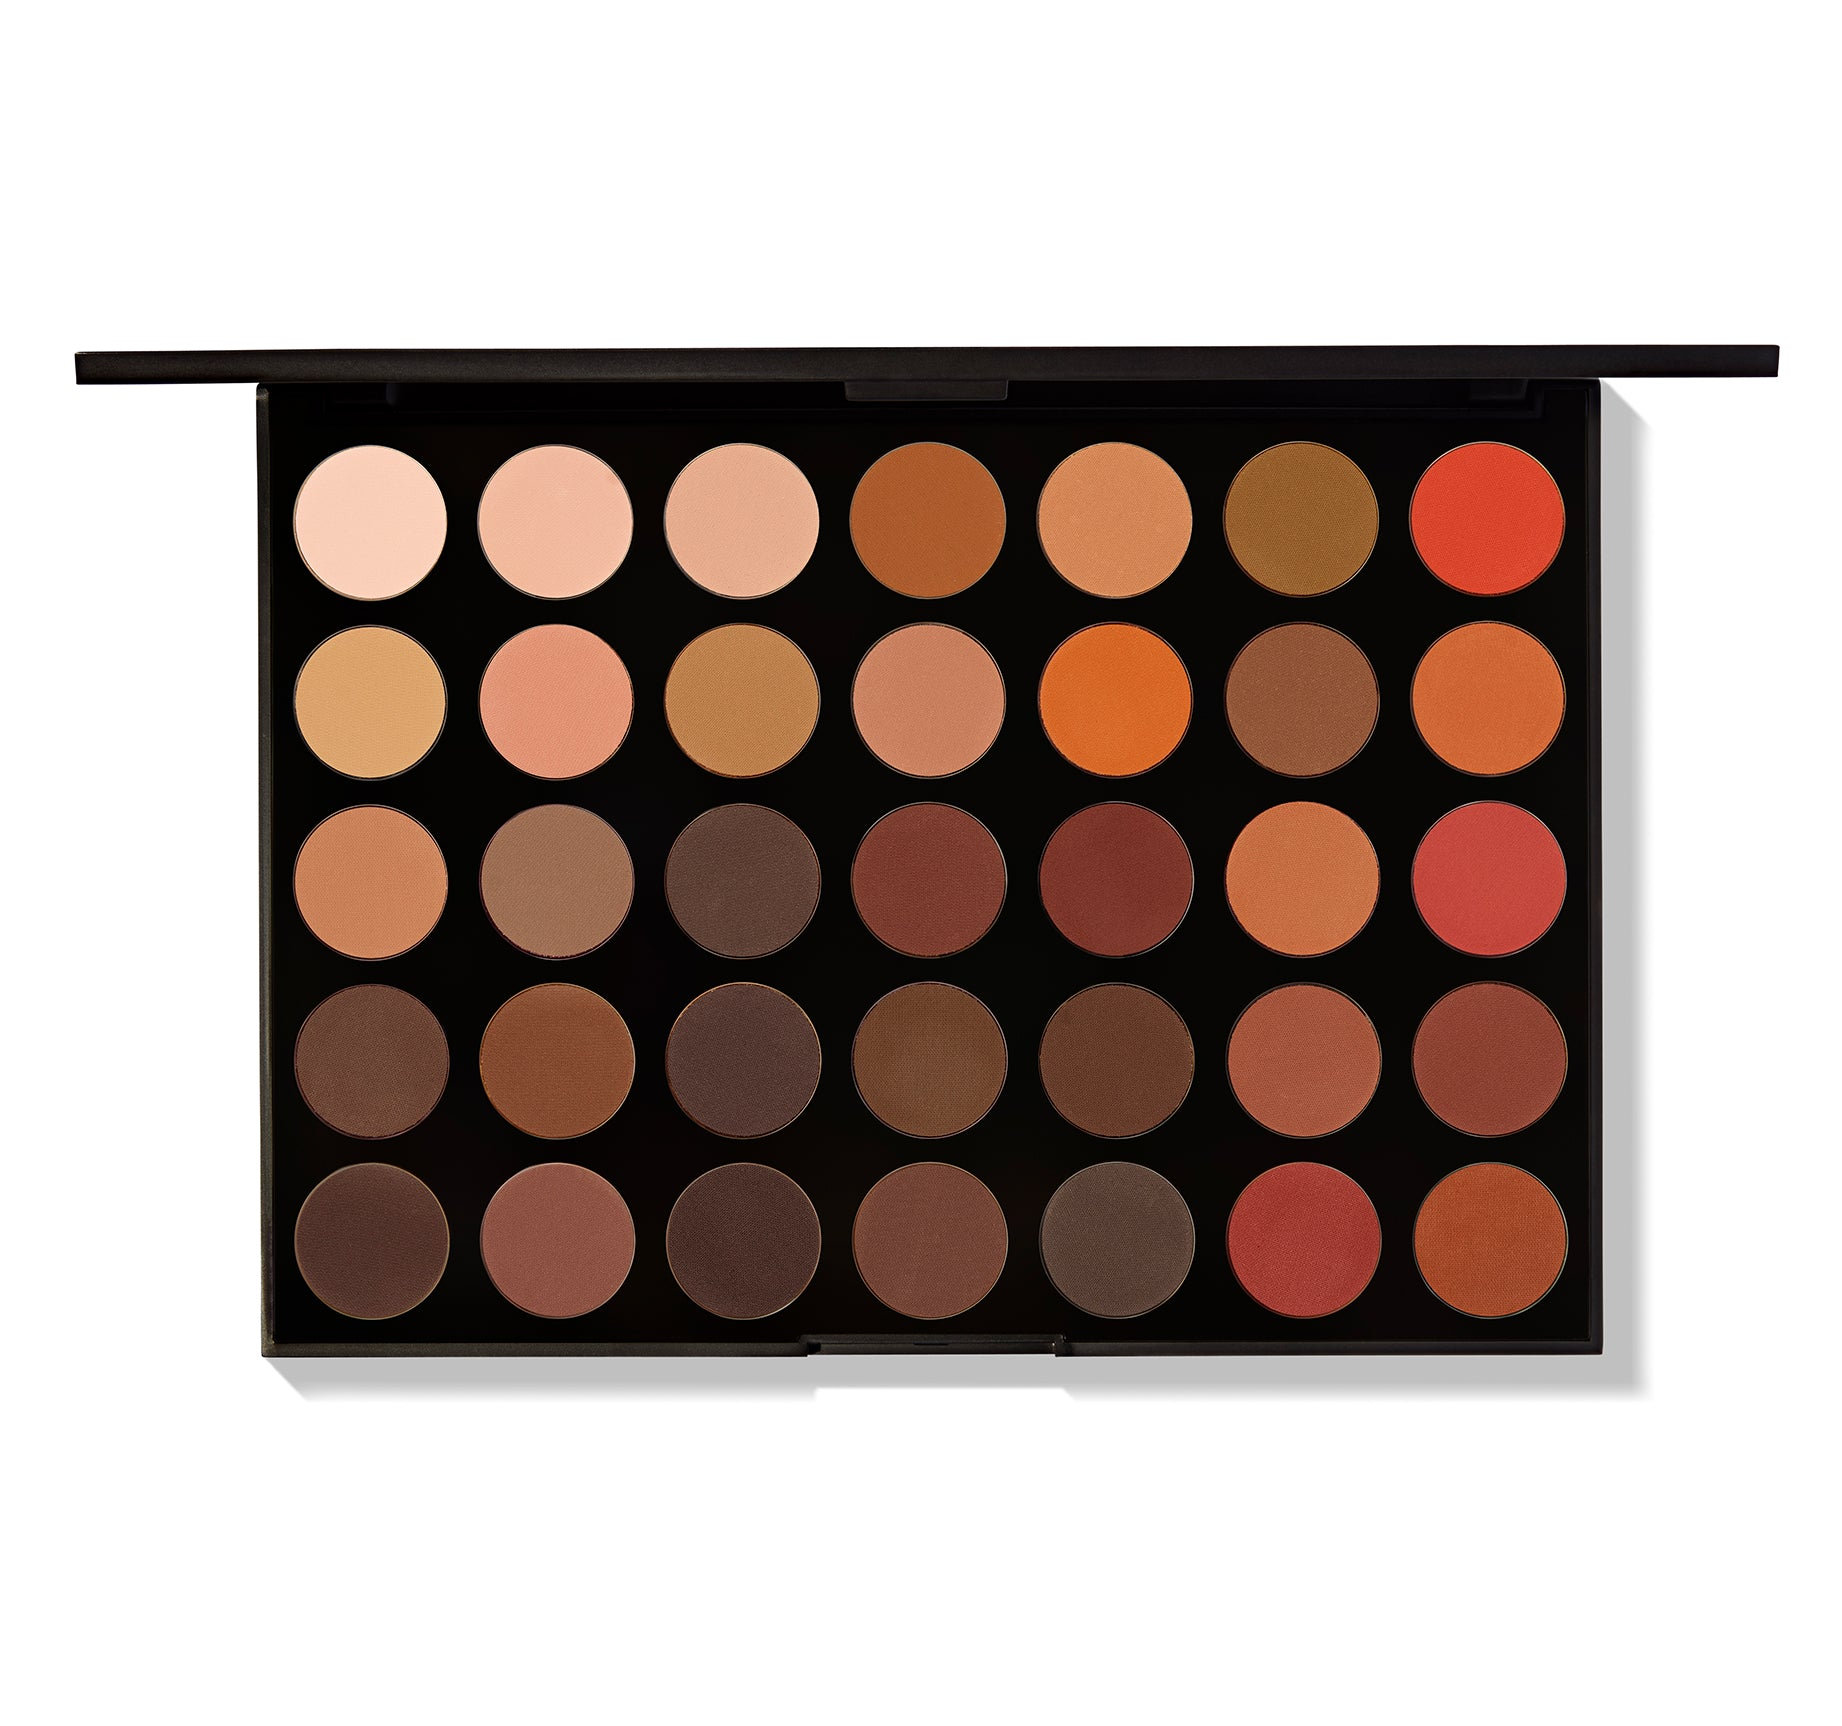 35OM NATURE GLOW MATTE ARTISTRY PALETTE, view larger image